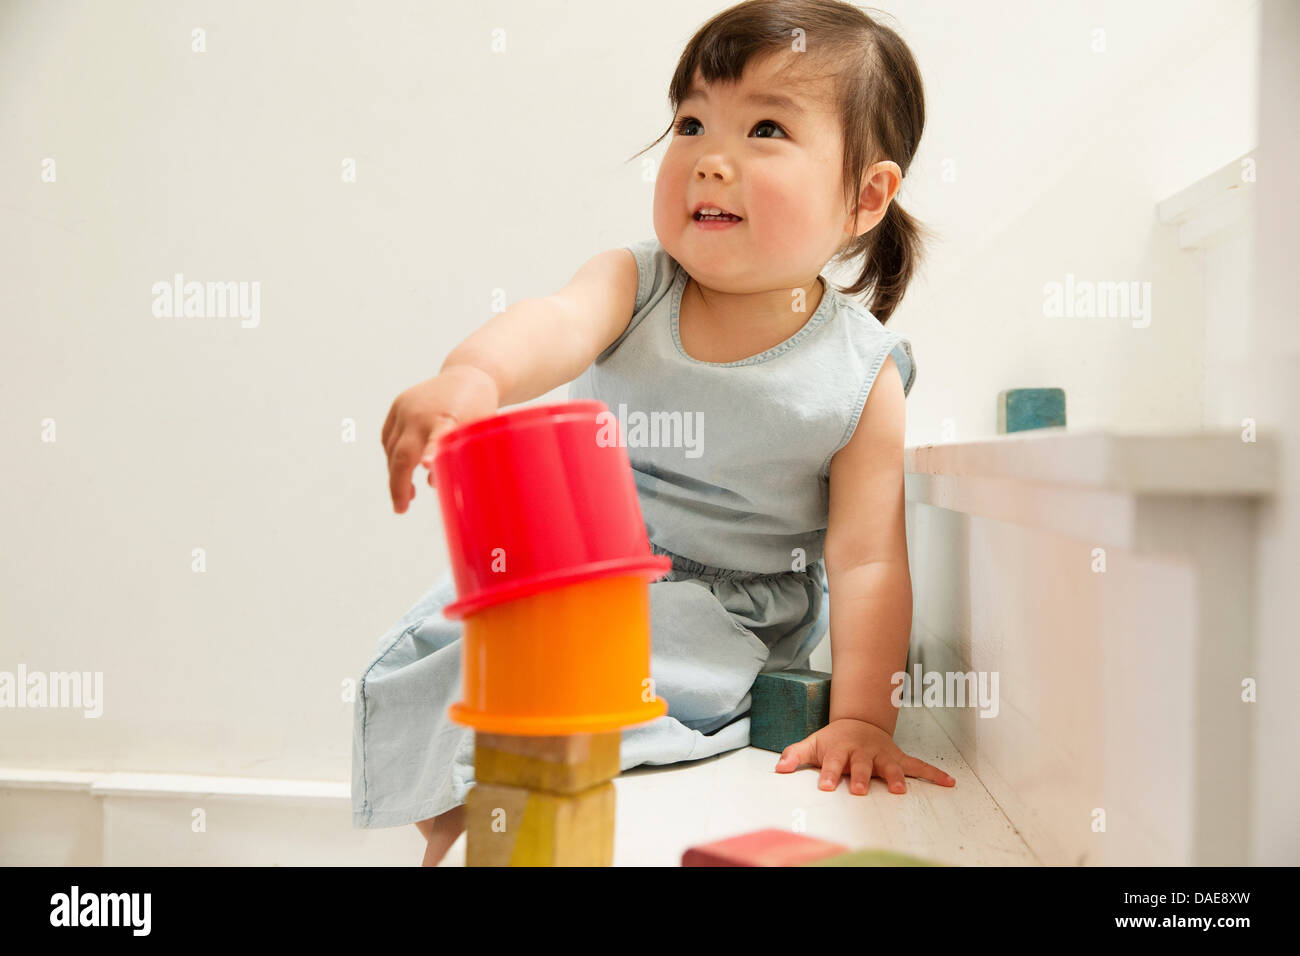 Female toddler on stairs building tower - Stock Image